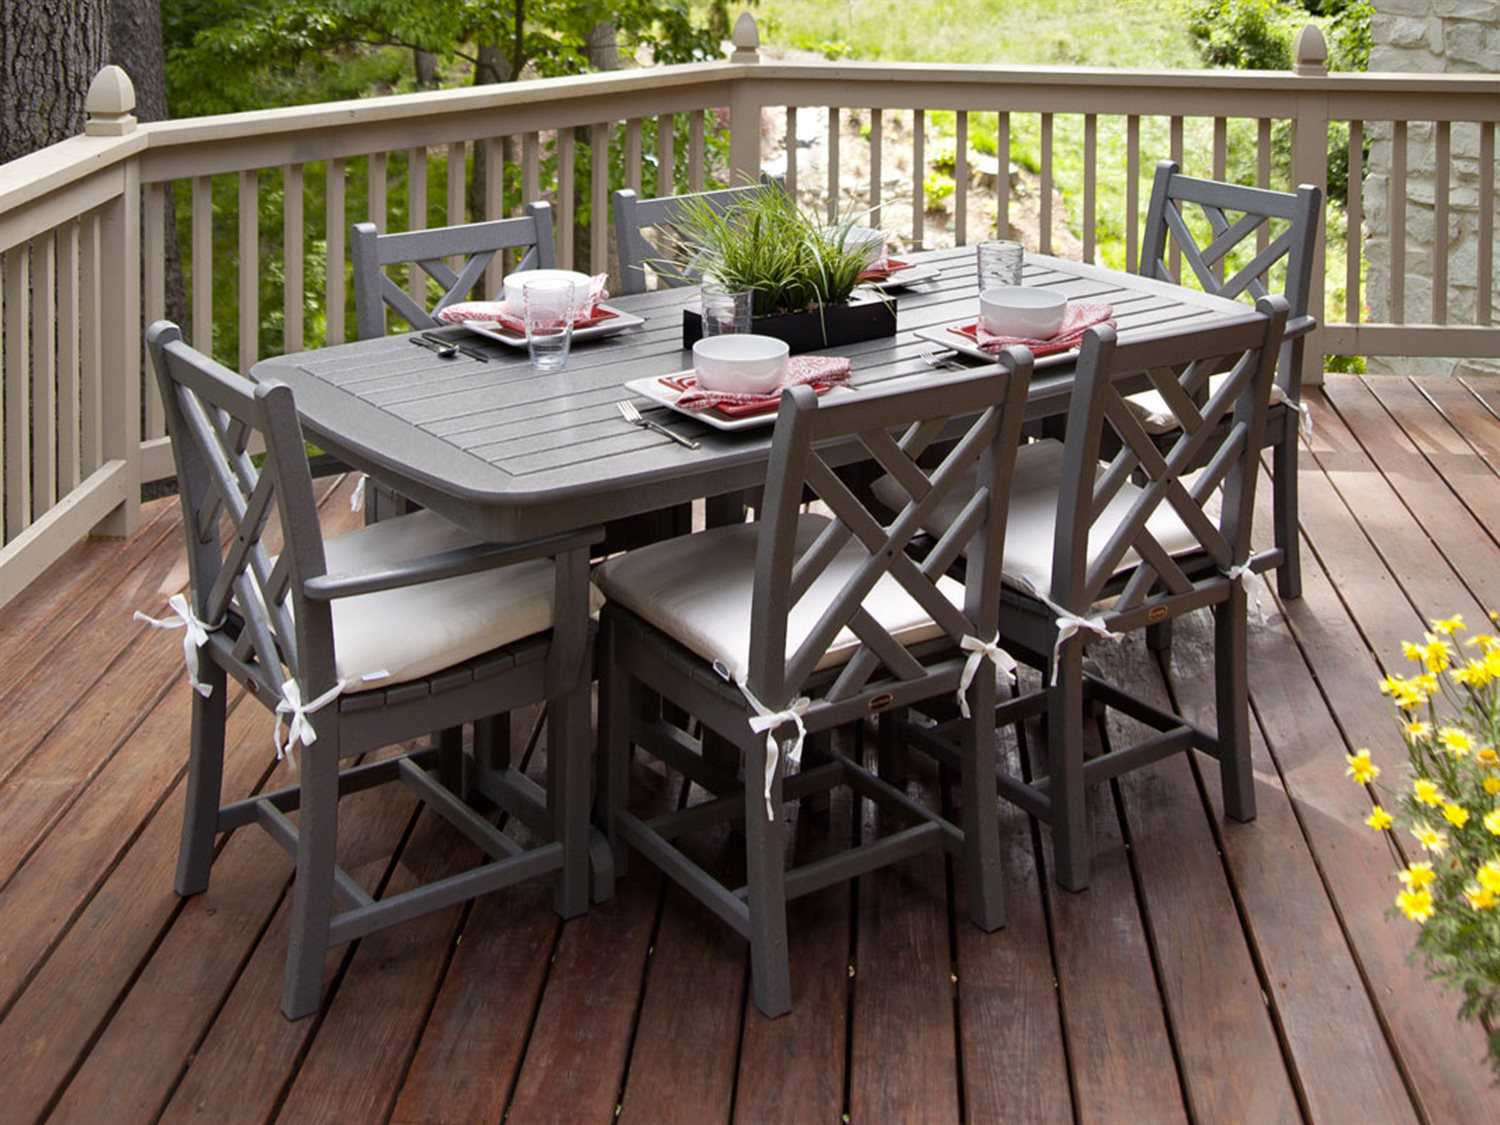 Best ideas about Recycled Plastic Patio Furniture . Save or Pin POLYWOOD Chippendale Recycled Plastic Dining Set Now.